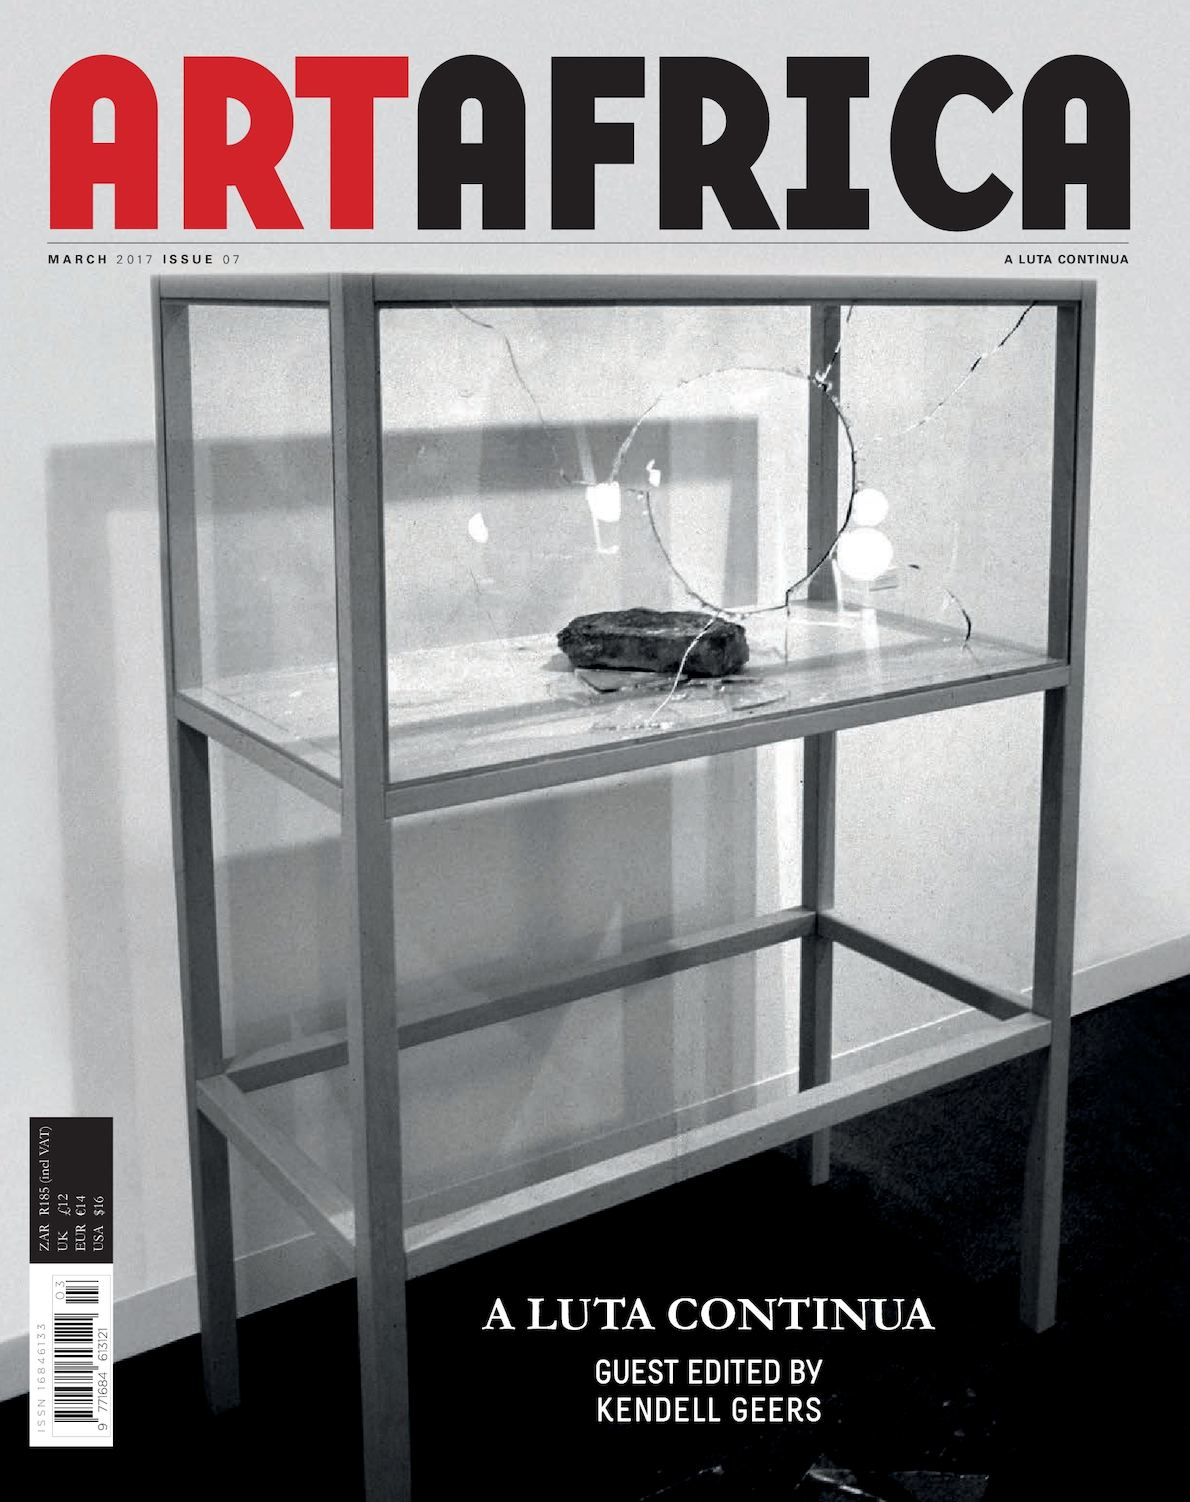 Calamo A Luta Continua Art Africa Issue 07 June 2012 Electronic Components Microchips Wood Frame 120x120 Cm